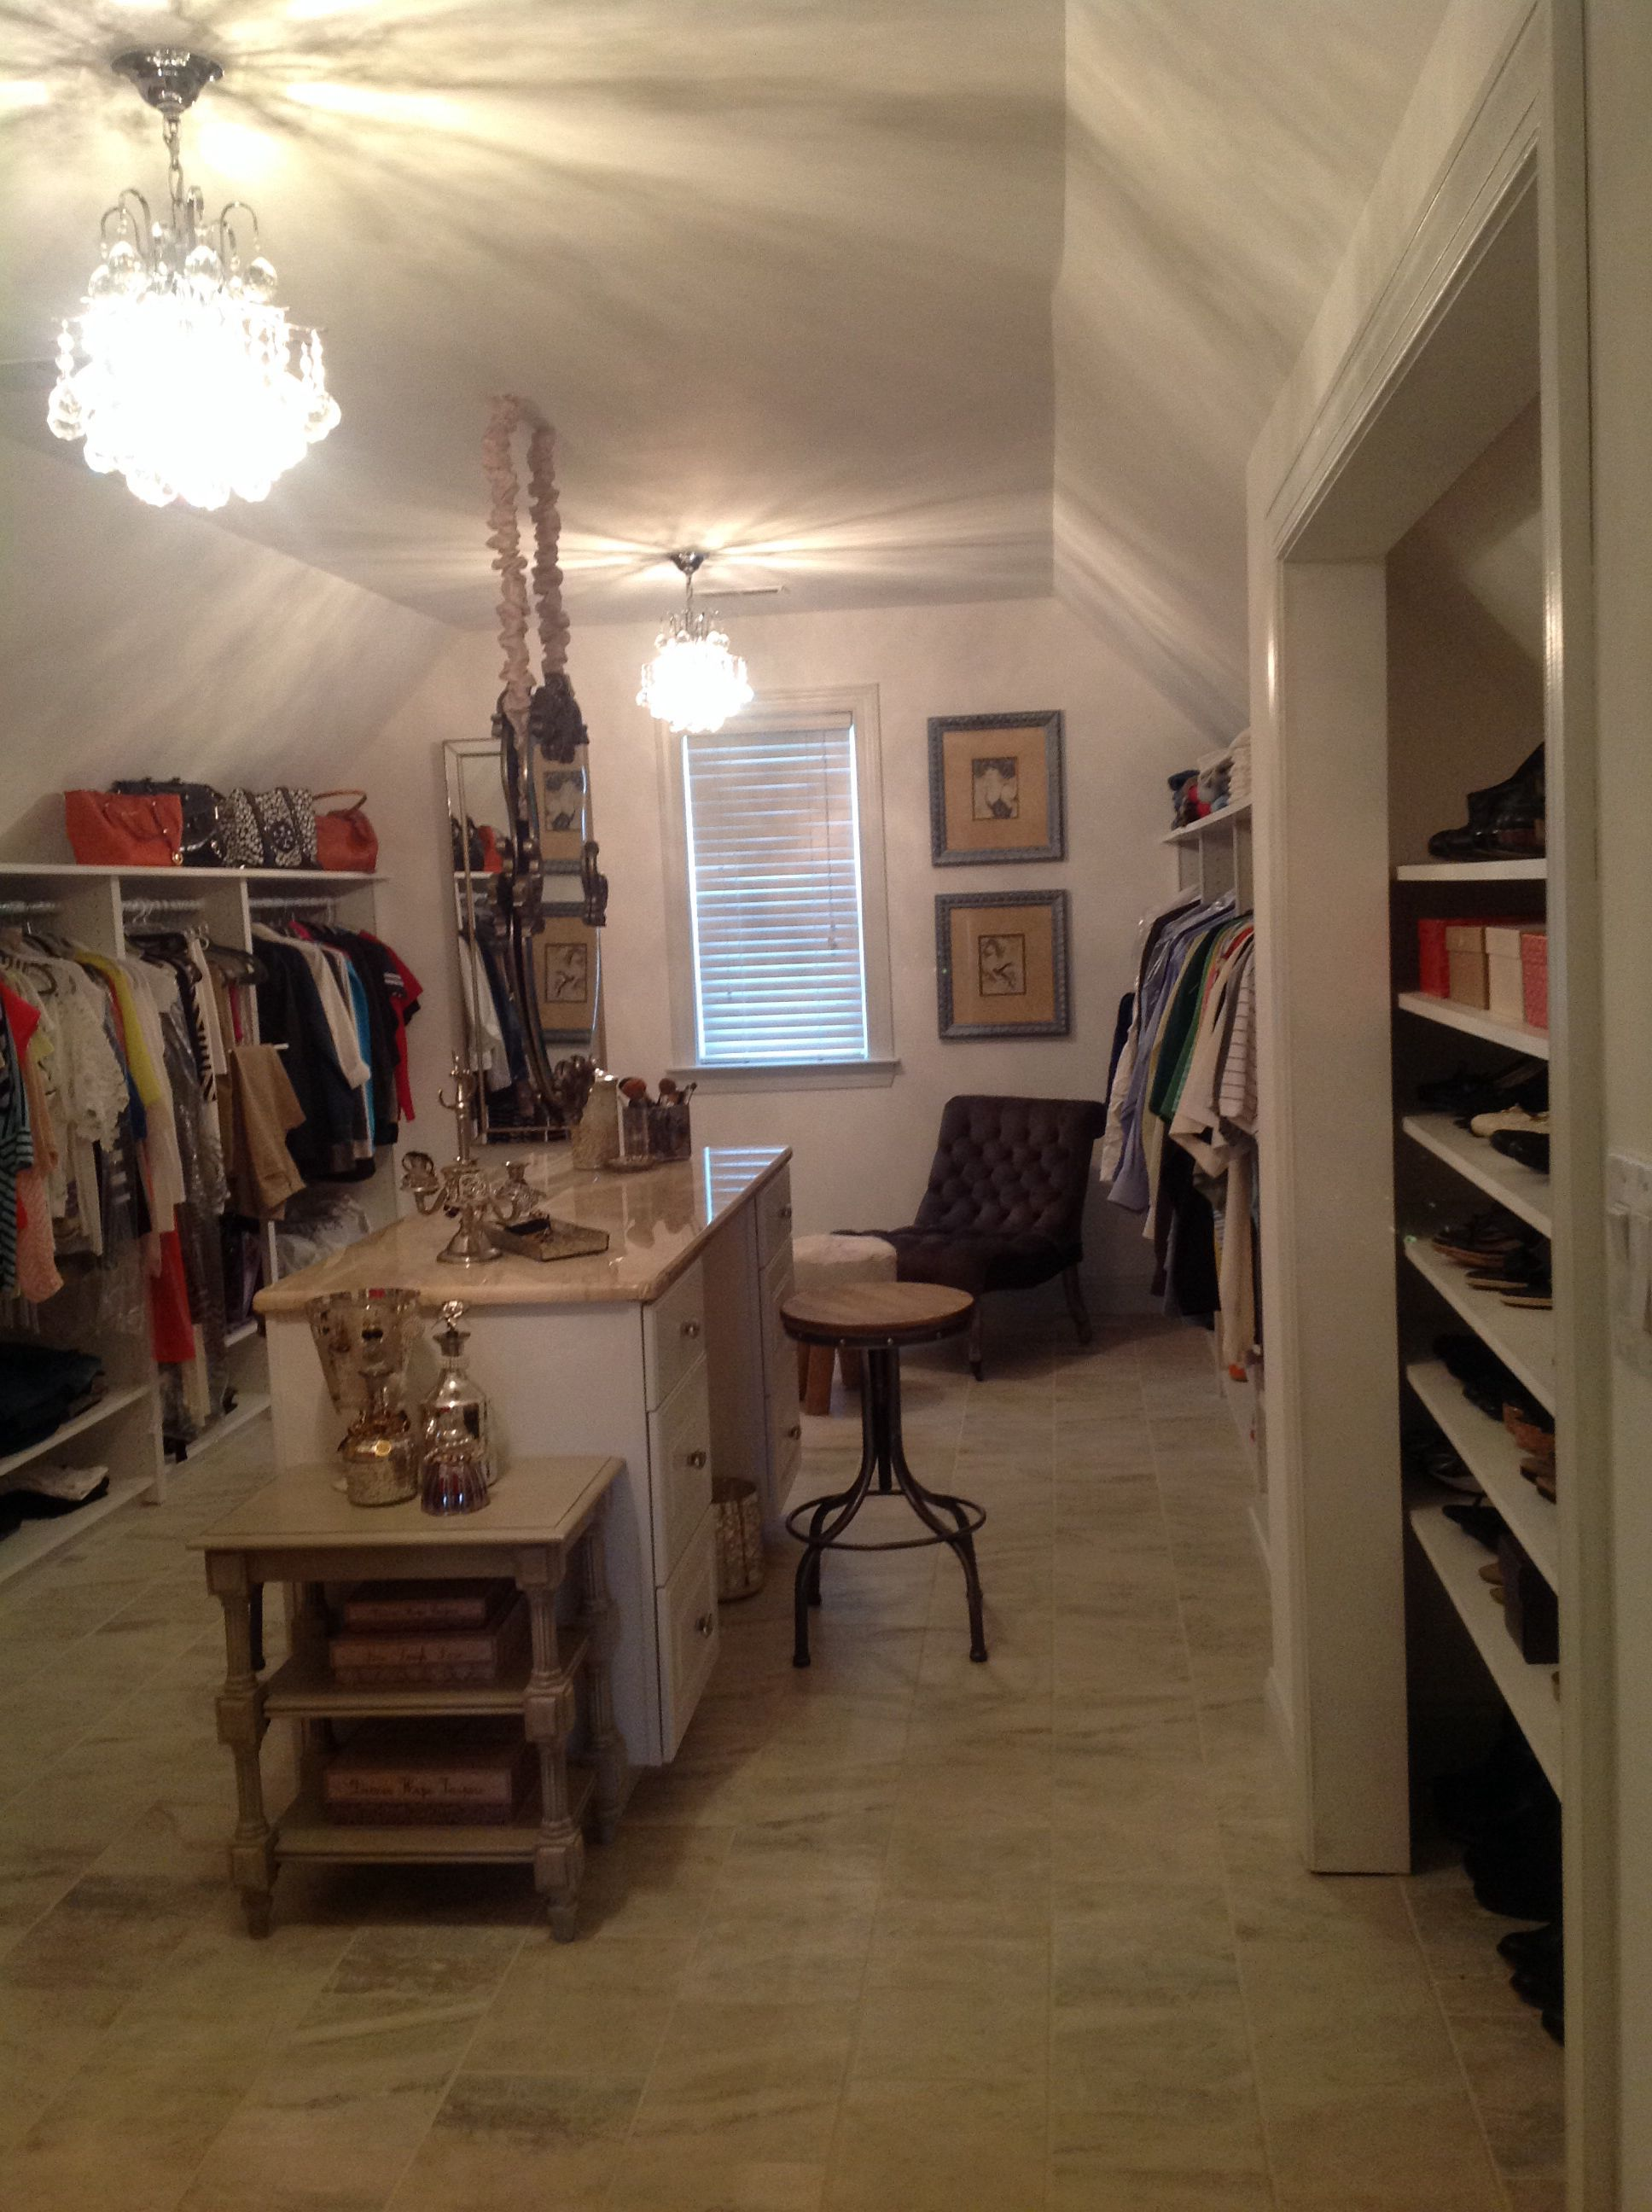 Double Hung Mirror From Ceiling Converted Linen Closet Into Glamorous Shoe Space Converted Bonus Room Over Garage Room Closet Garage Closet Bonus Room